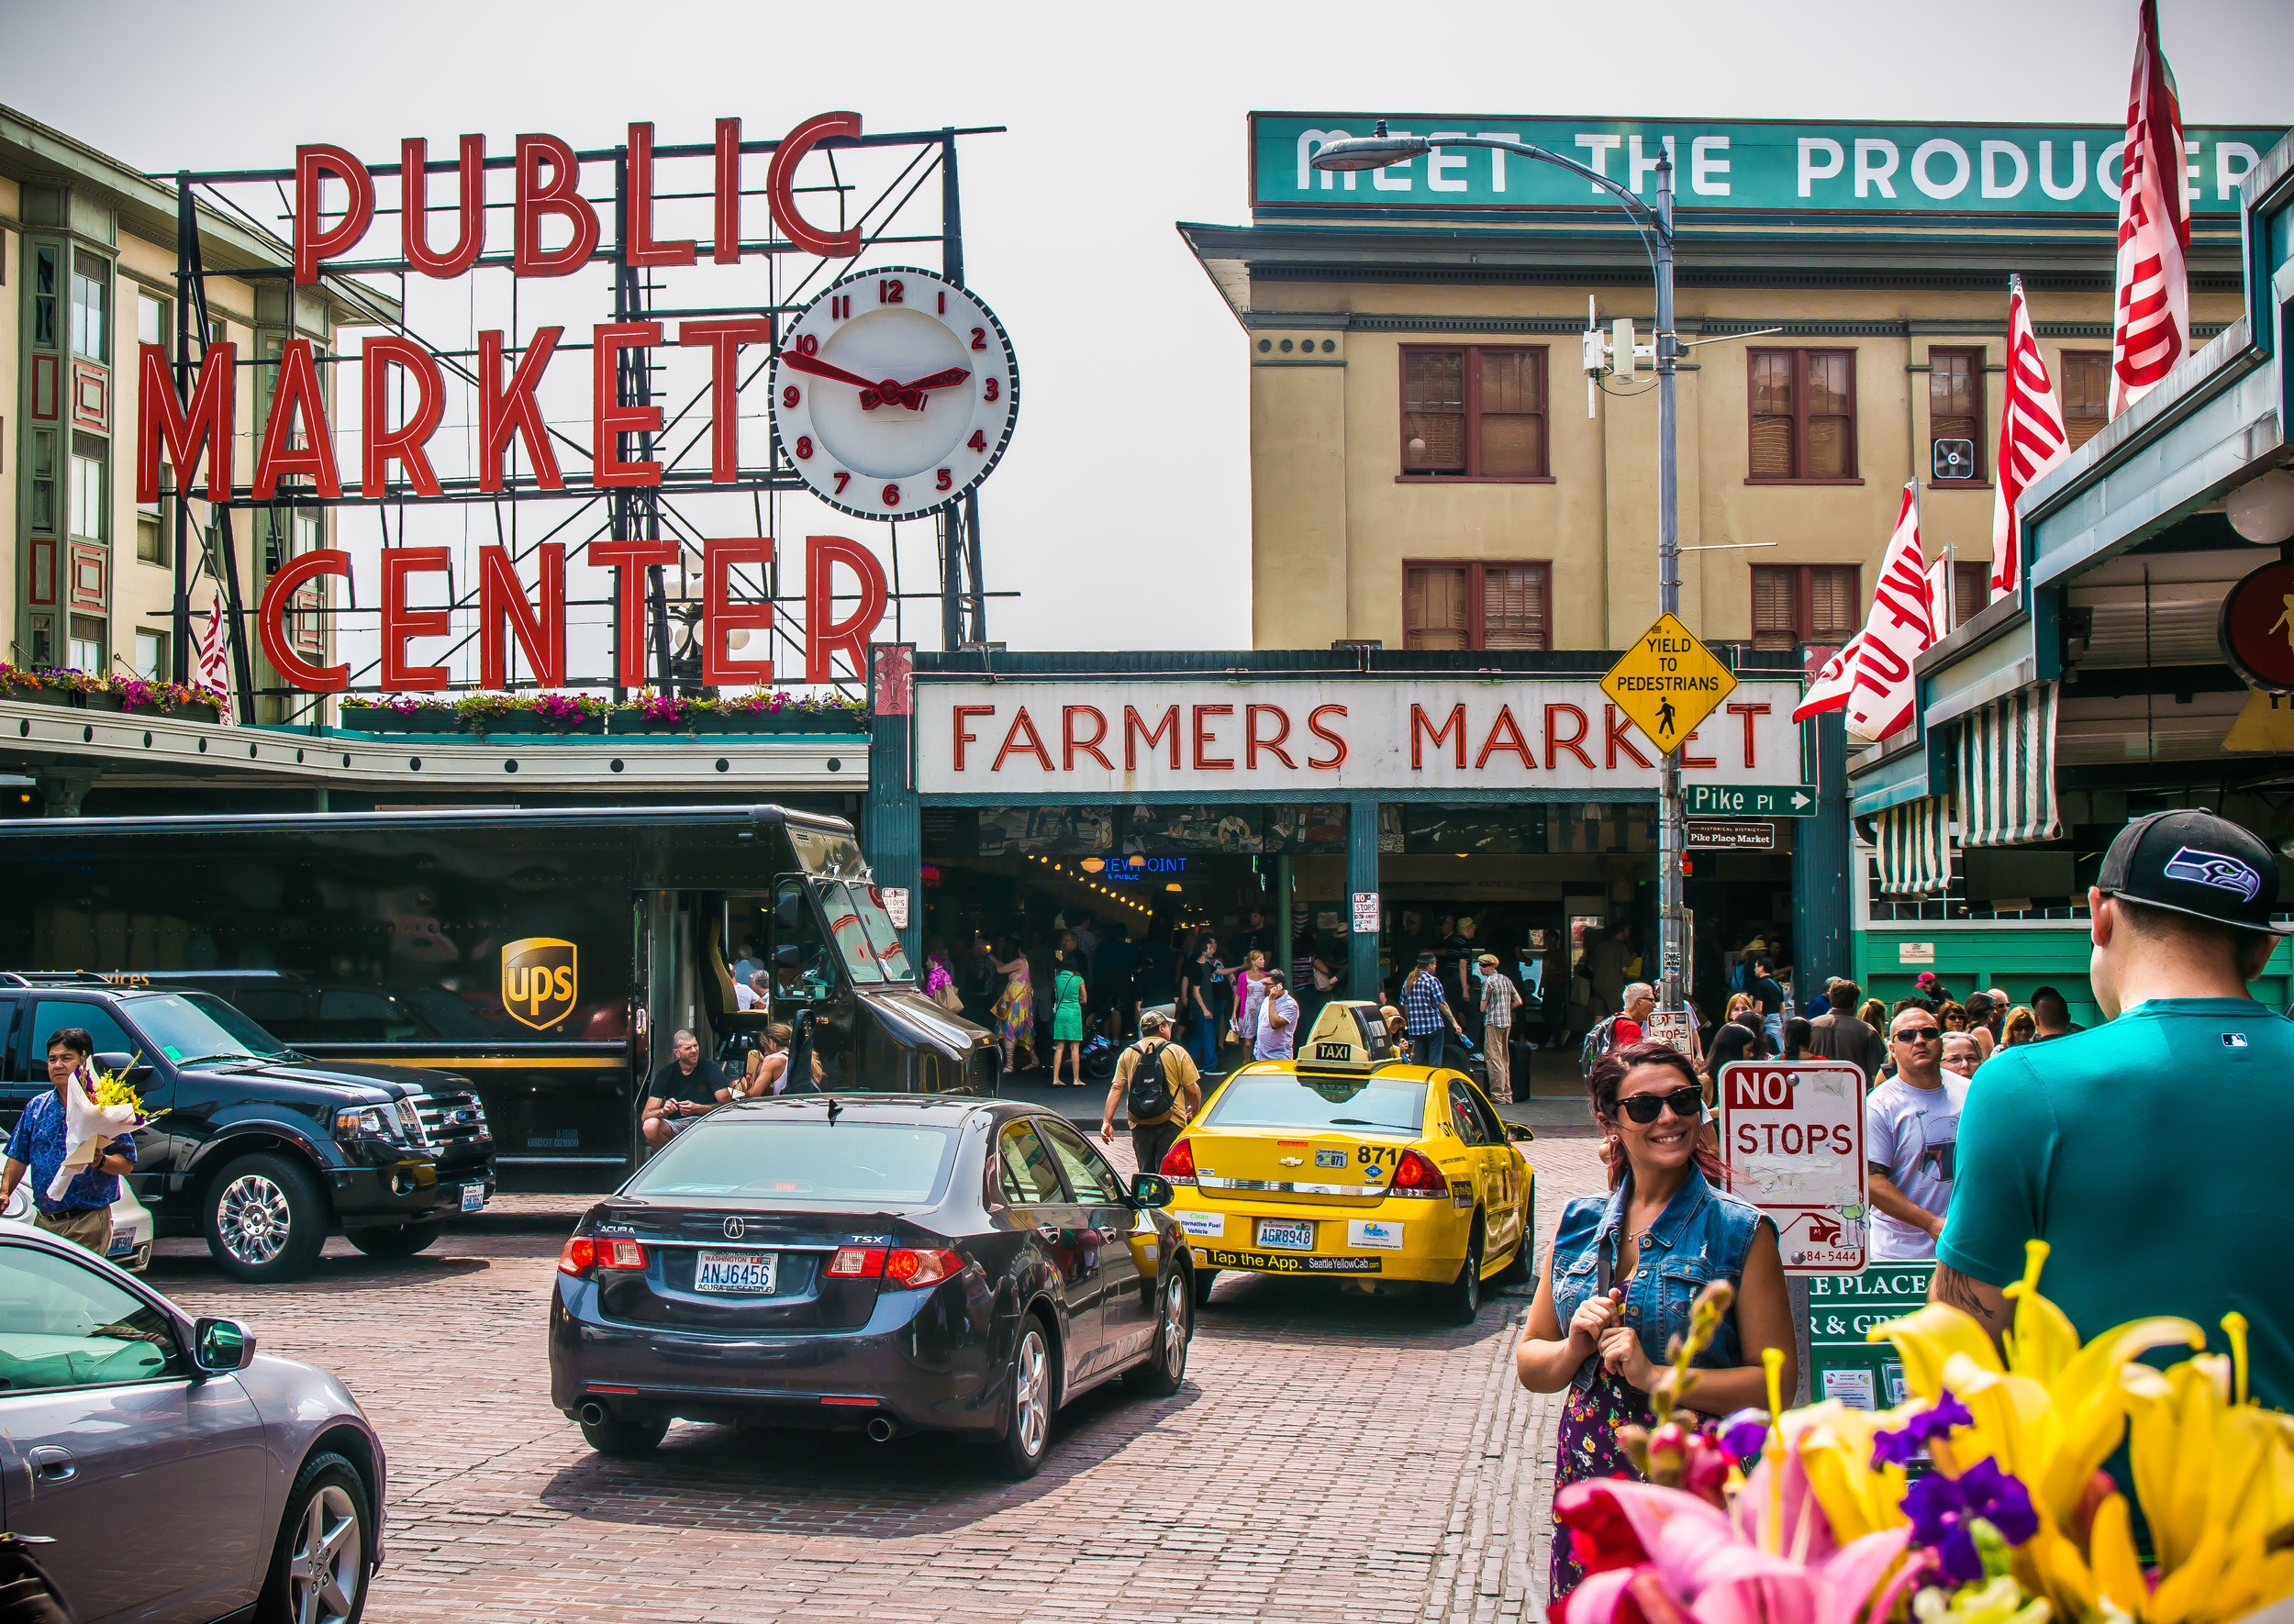 The self-critical photographer in me hasn't been pleased with many shots this trip, but l LOVE THIS PICTURE! Click to enlarge if you wish. Pike's Place Market, Seattle, WA.